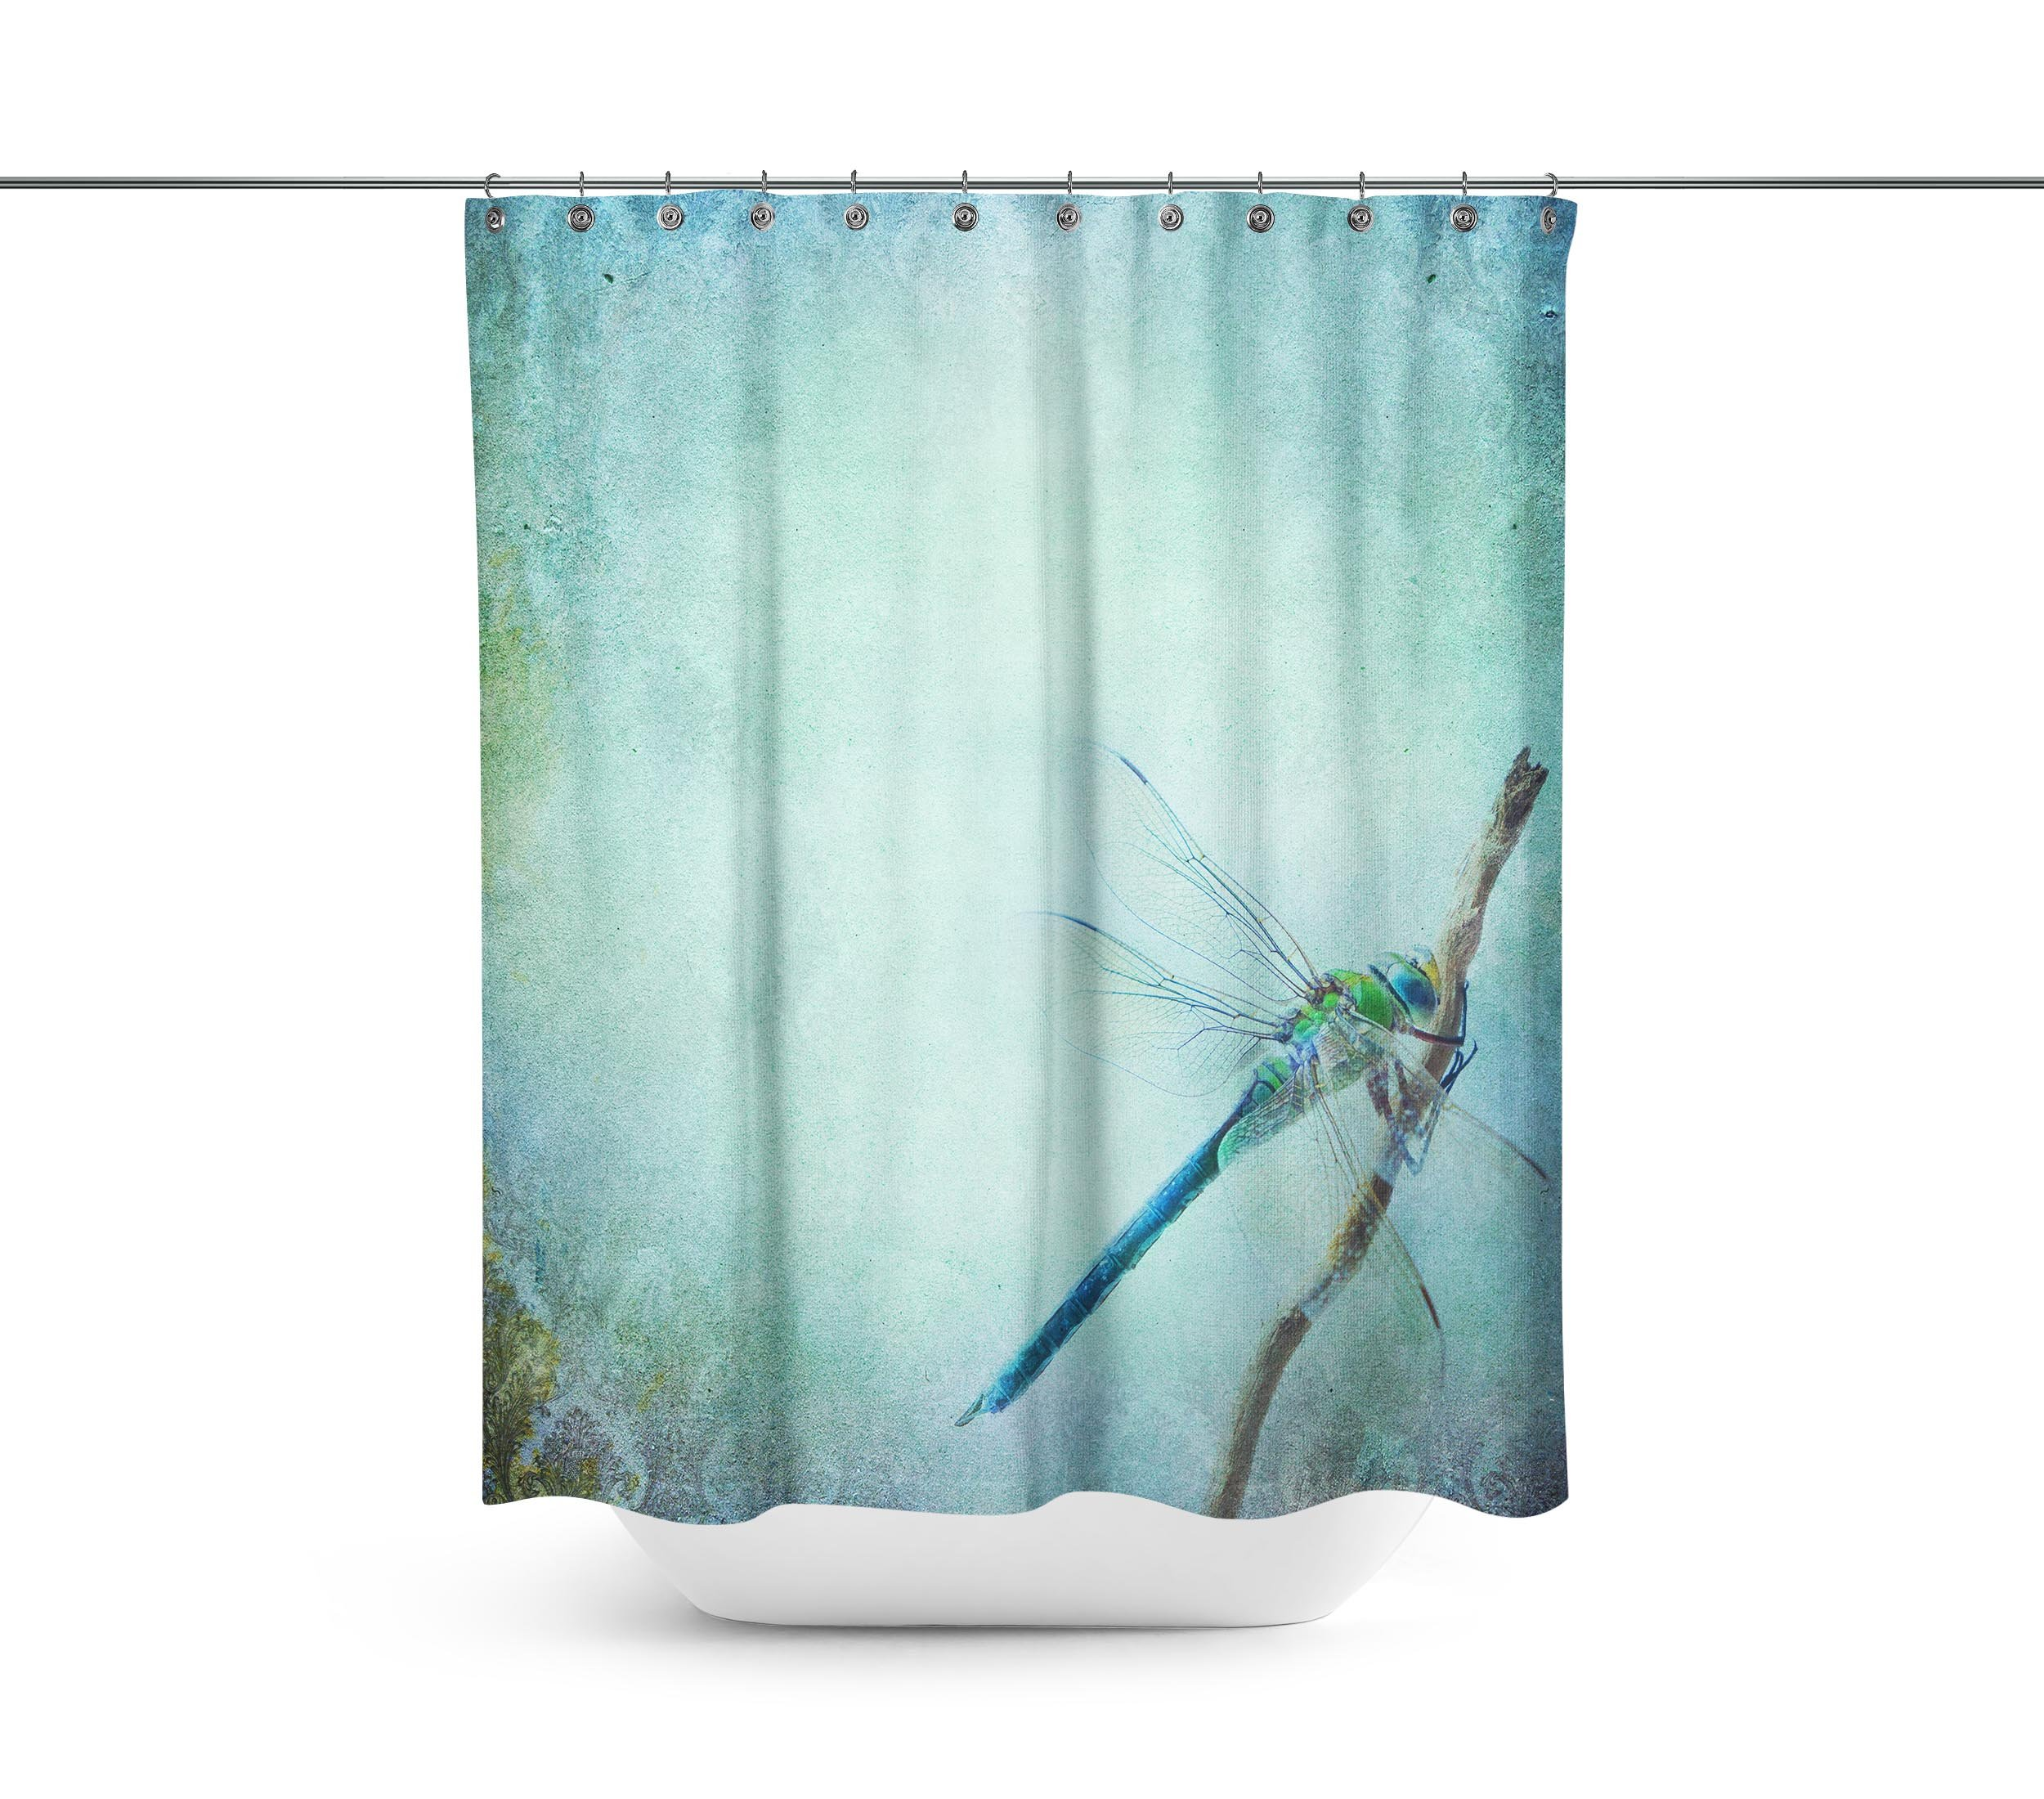 Cheap Shabby Chic Shower Curtains Find Shabby Chic Shower